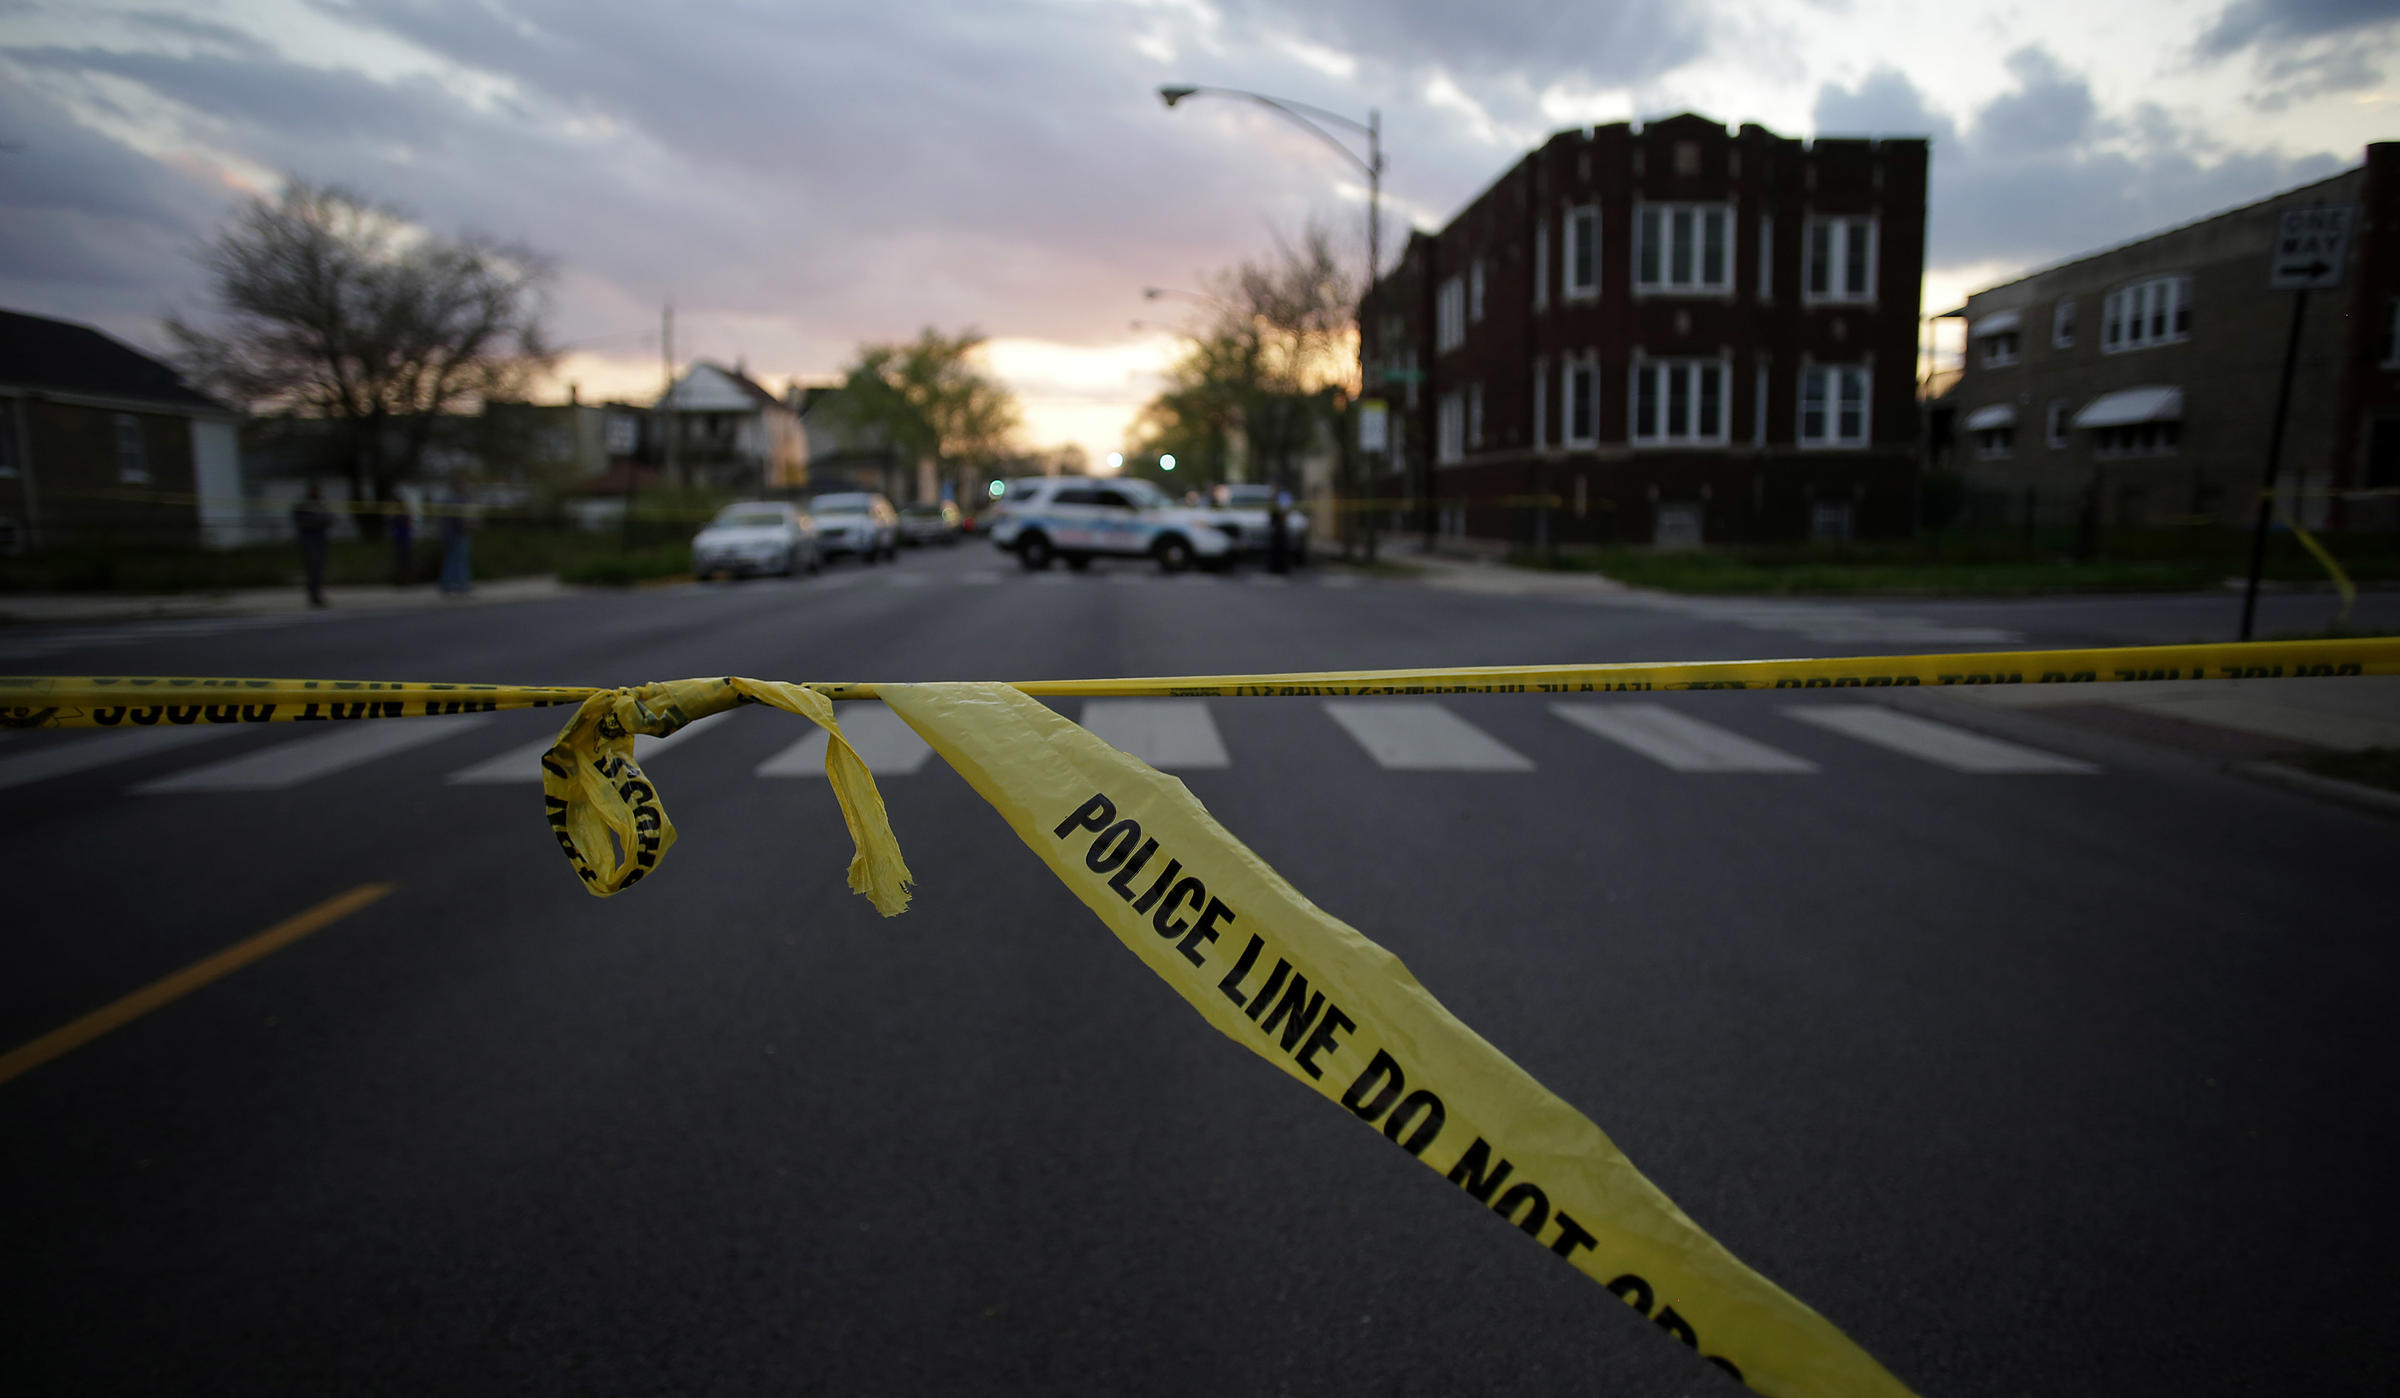 Murders jumped almost 11% in 2015, Federal Bureau of Investigation data shows